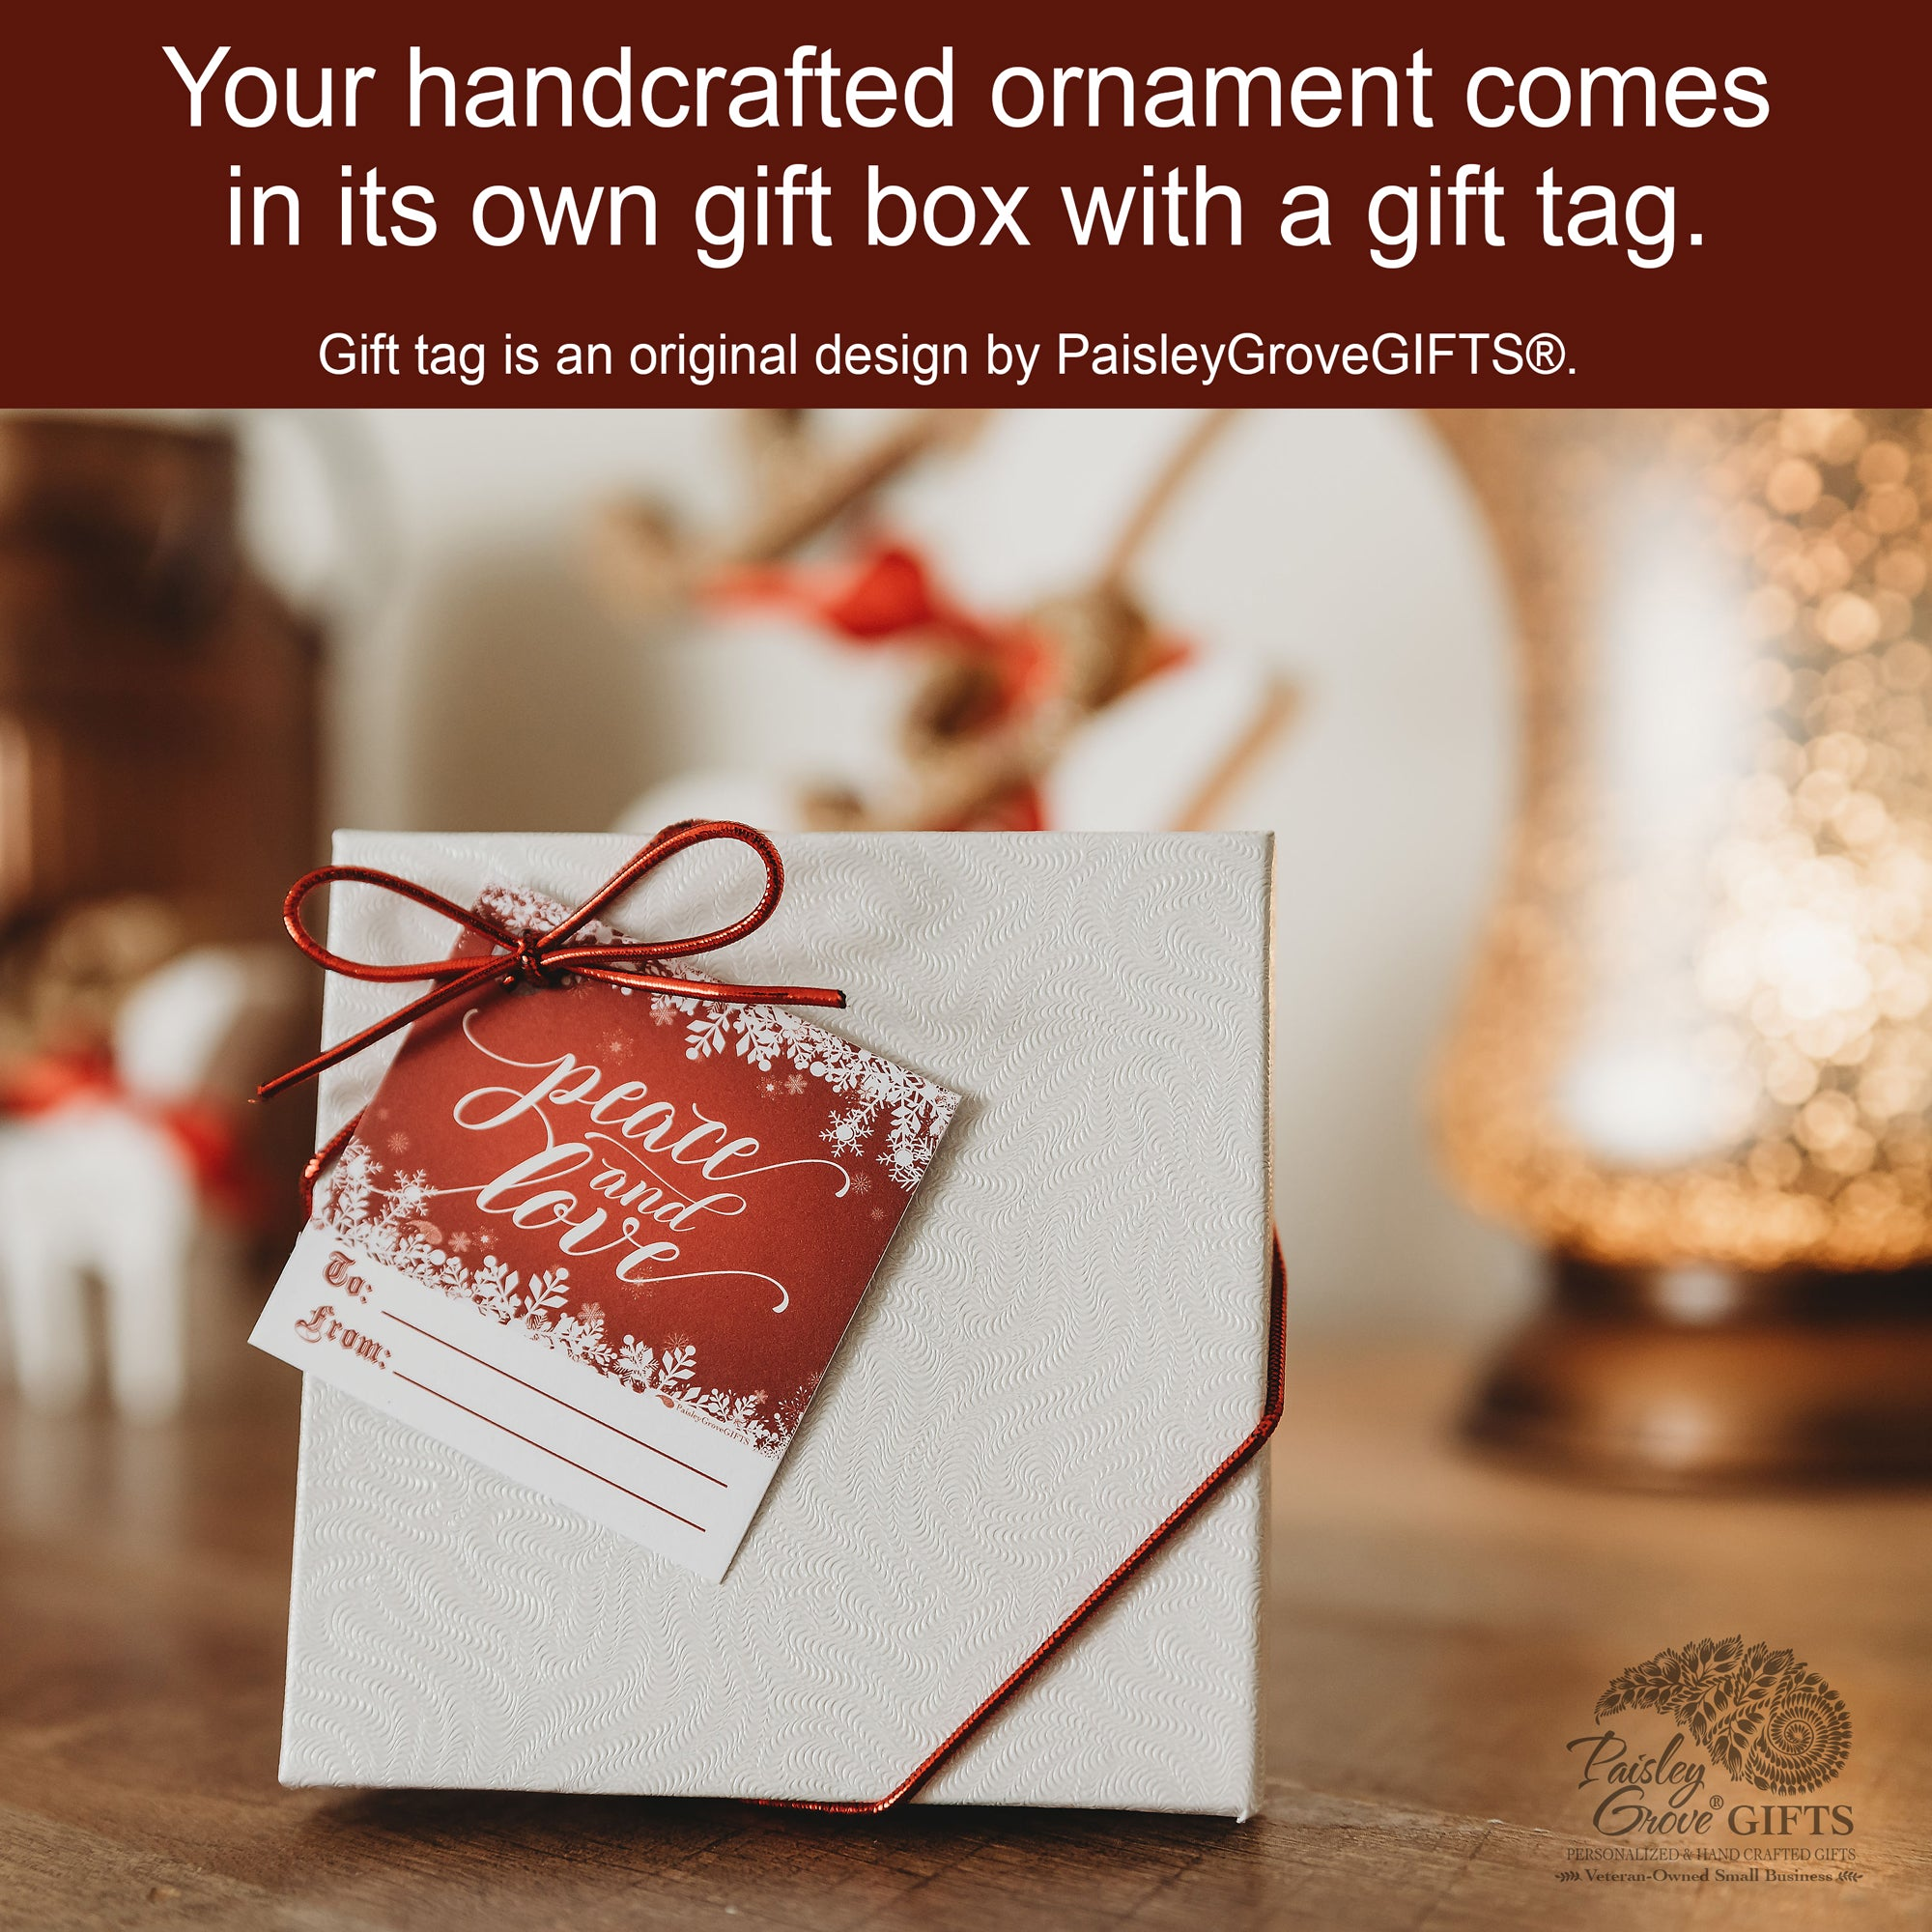 Copyright PaisleyGroveGIFTS S525p Unique Christmas Ornament 2020 includes keepsake gift box with gift tag